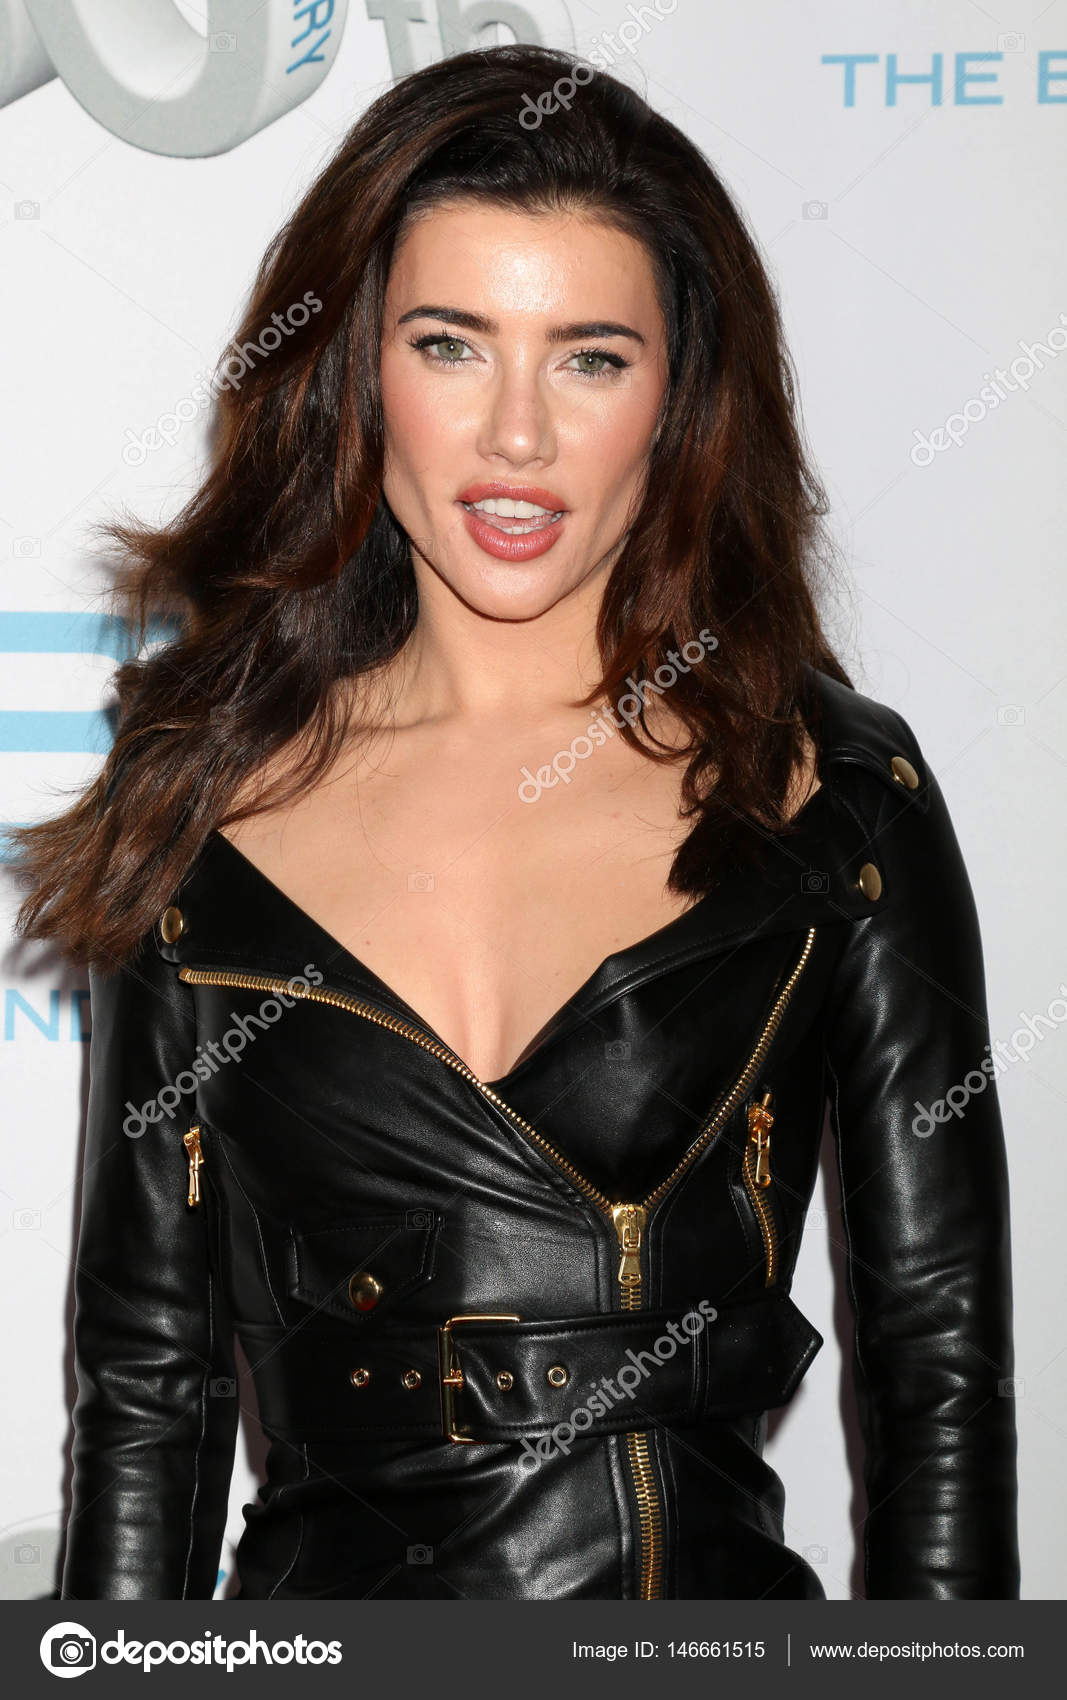 Jacqueline MacInnes Wood Nude Photos 37